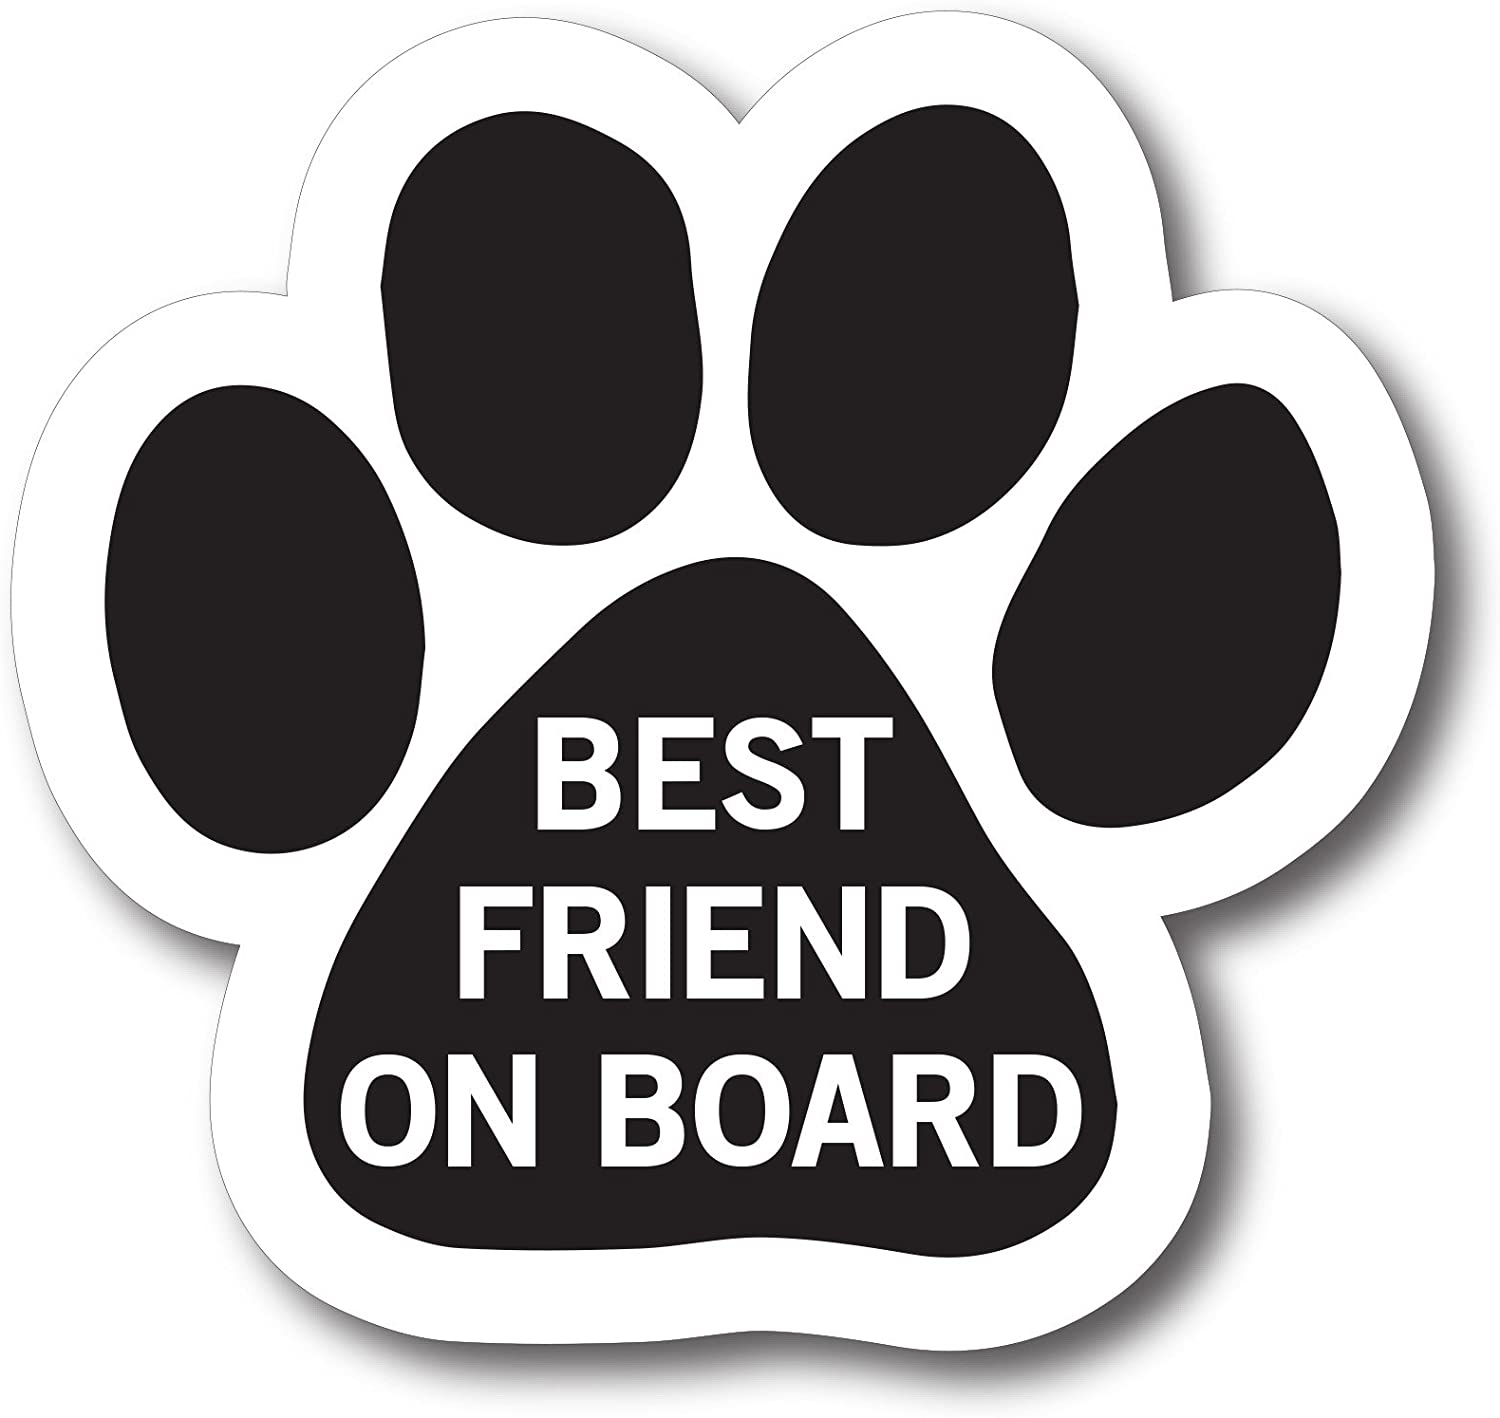 Magnet Me Up Best Friend on Board Pawprint Car Magnet Paw Print Auto Truck Decal Magnet